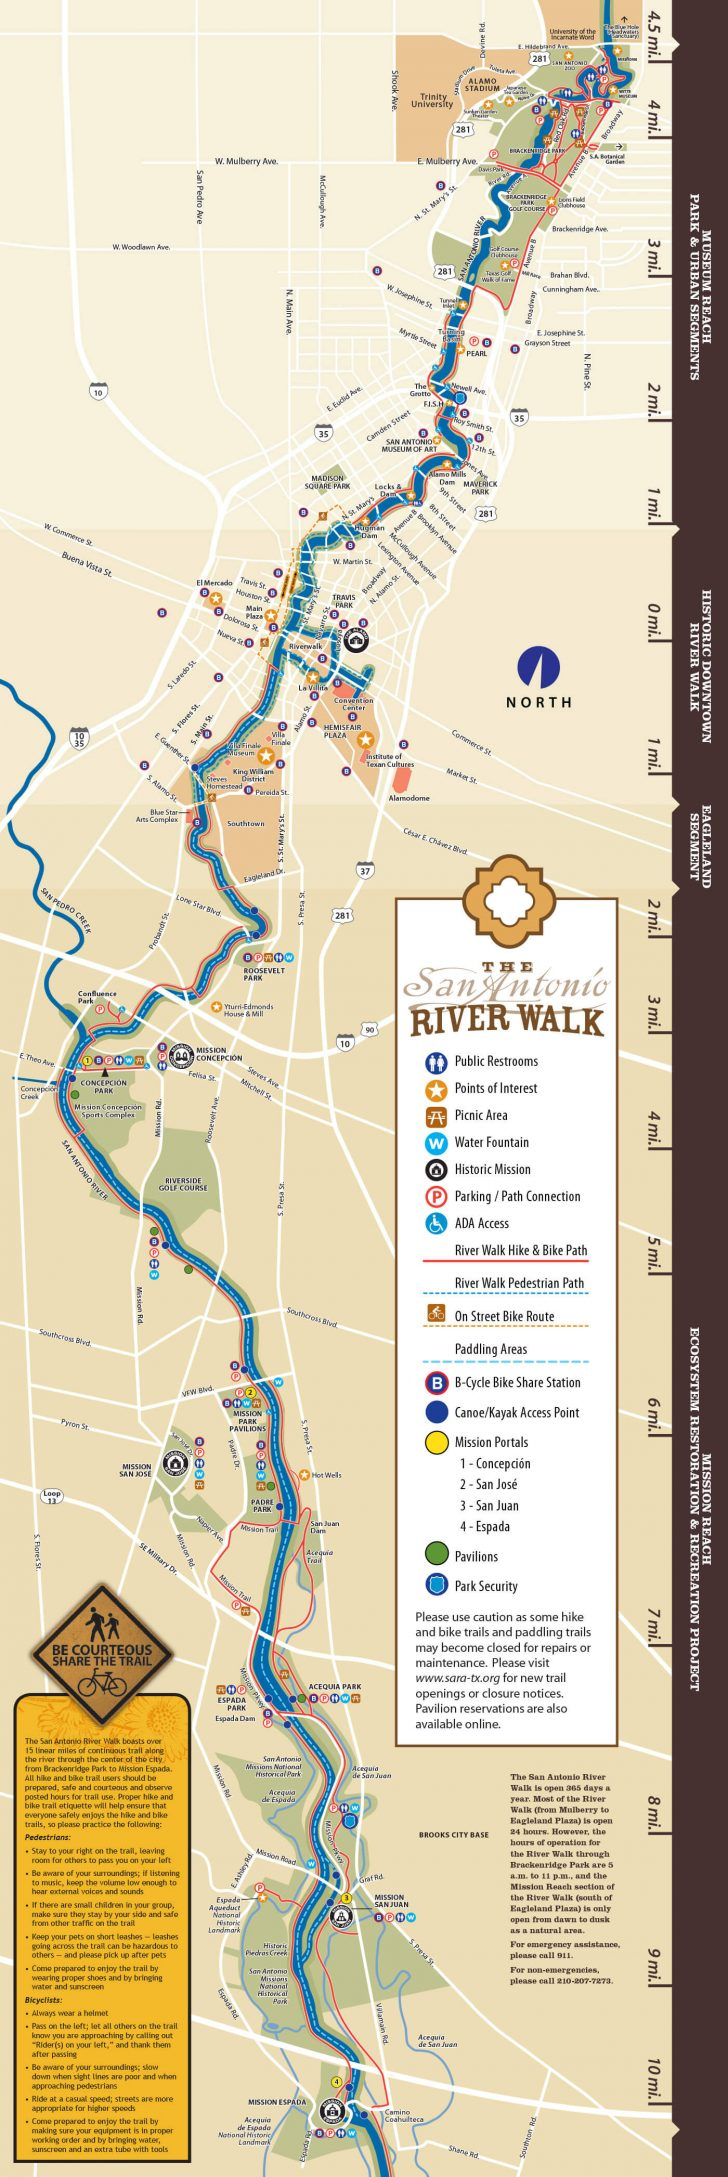 Map Of Hotels Near Riverwalk In San Antonio Texas